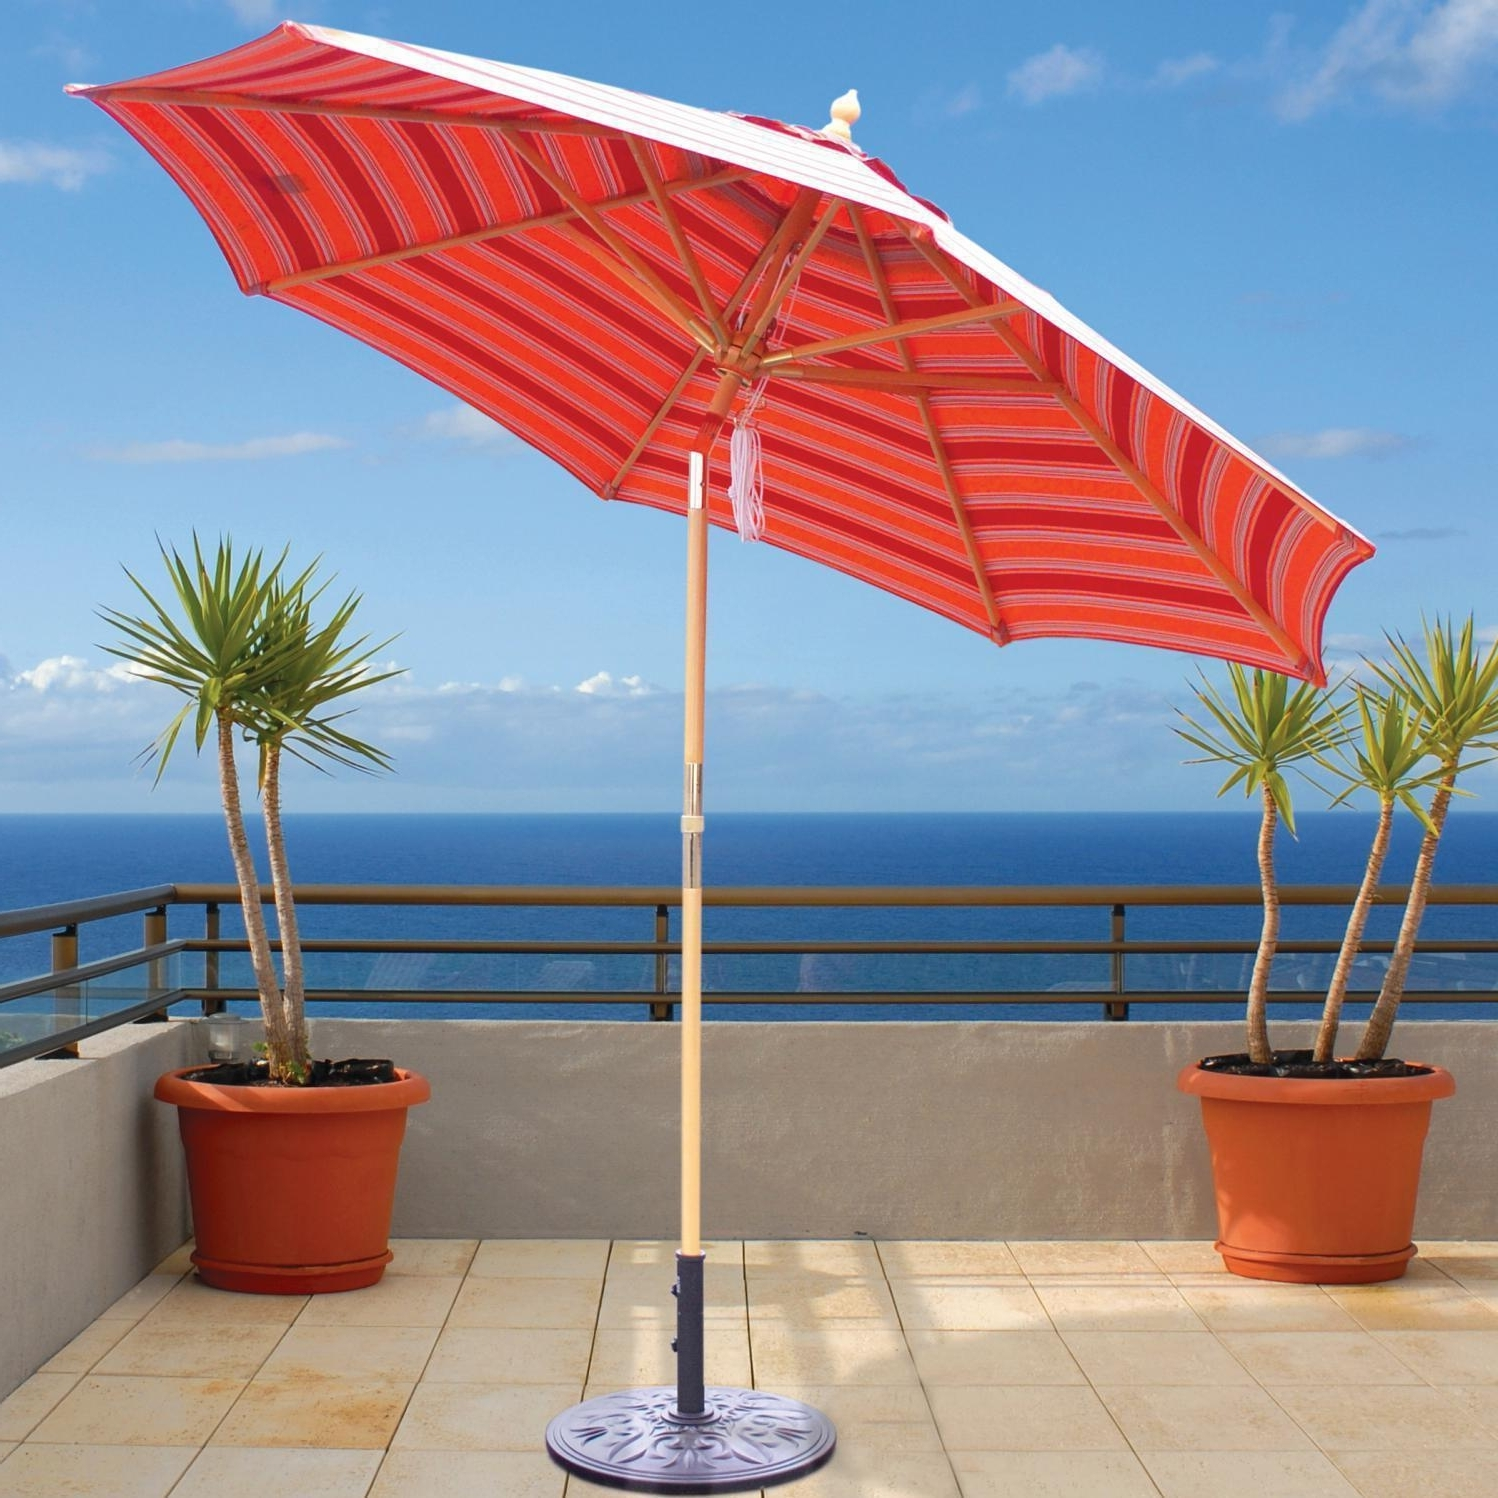 Wooden Patio Umbrellas In Well Known Galtech 9 Ft Wood Patio Umbrella With Crank Lift And Rotational Tilt (View 18 of 20)